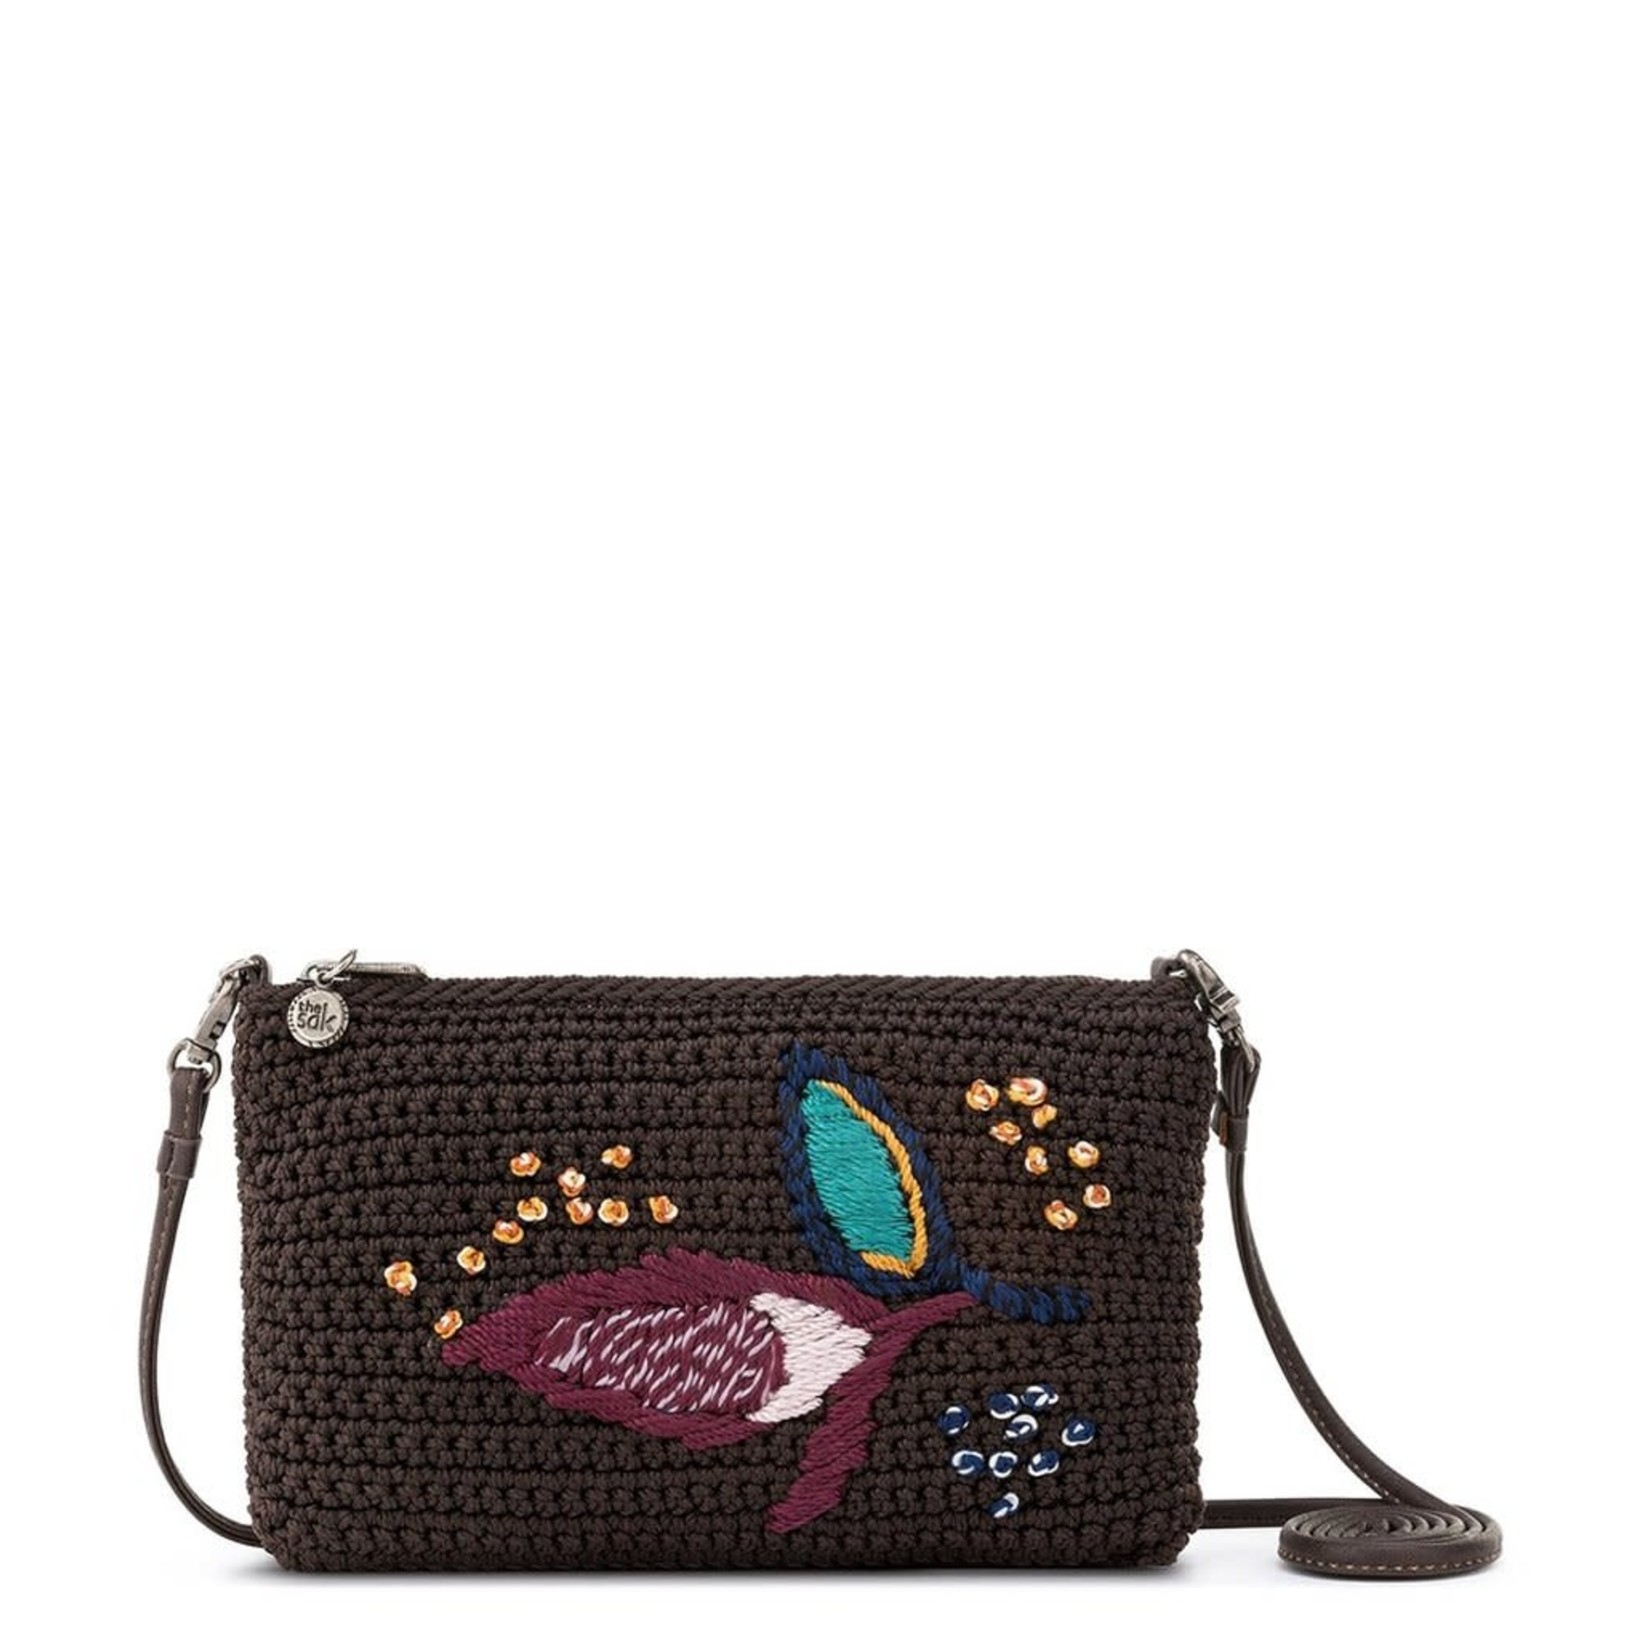 The Sak Solana Convertible Crossbody - Coffee Leaf Embroidery